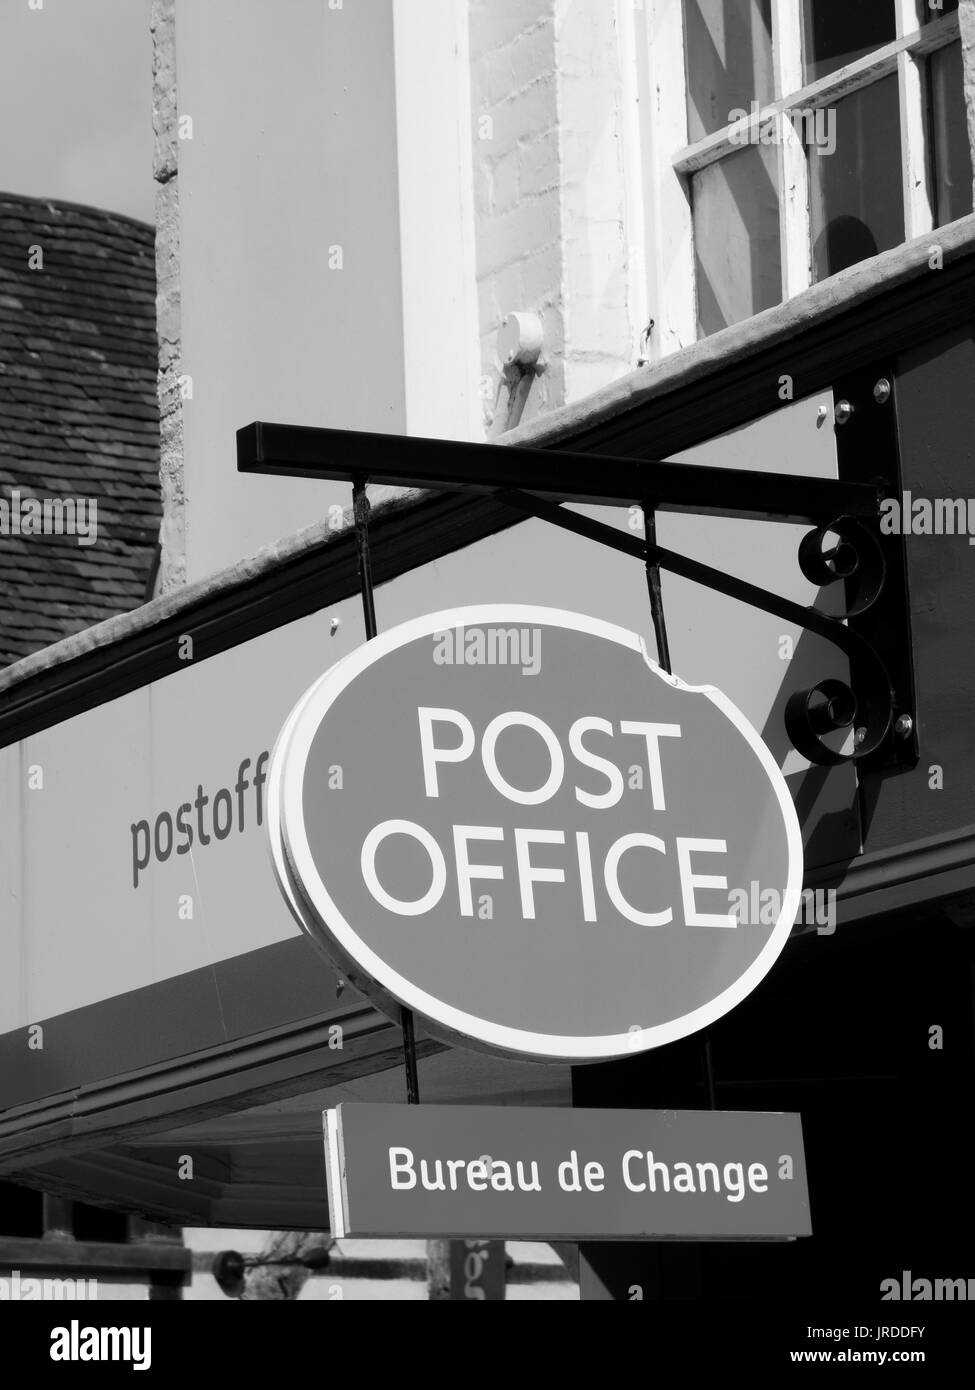 Post notice delivery stock photos post notice delivery - Post office bureau de change buy back ...